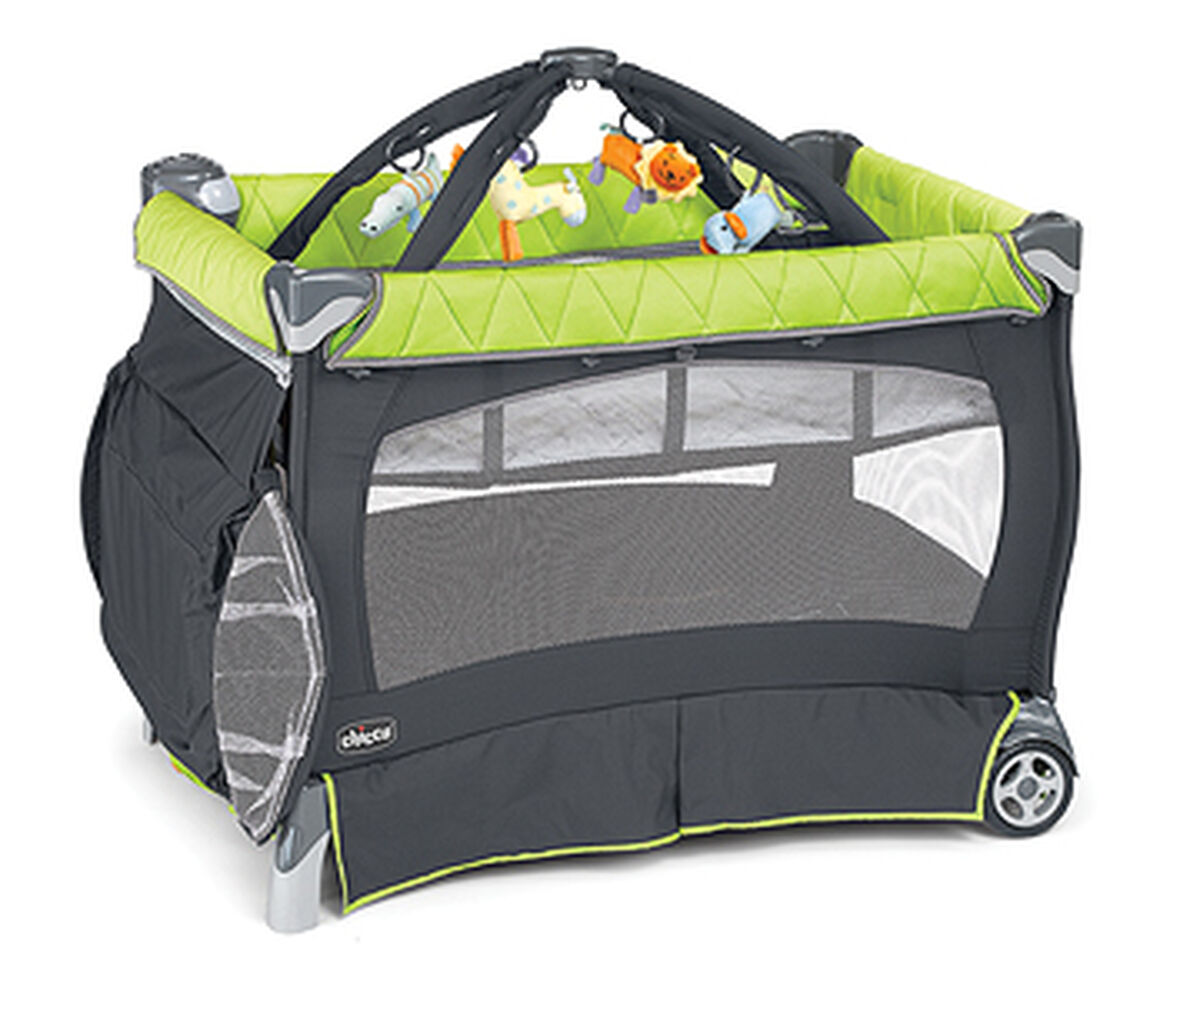 Chicco Lullaby Playard Zest